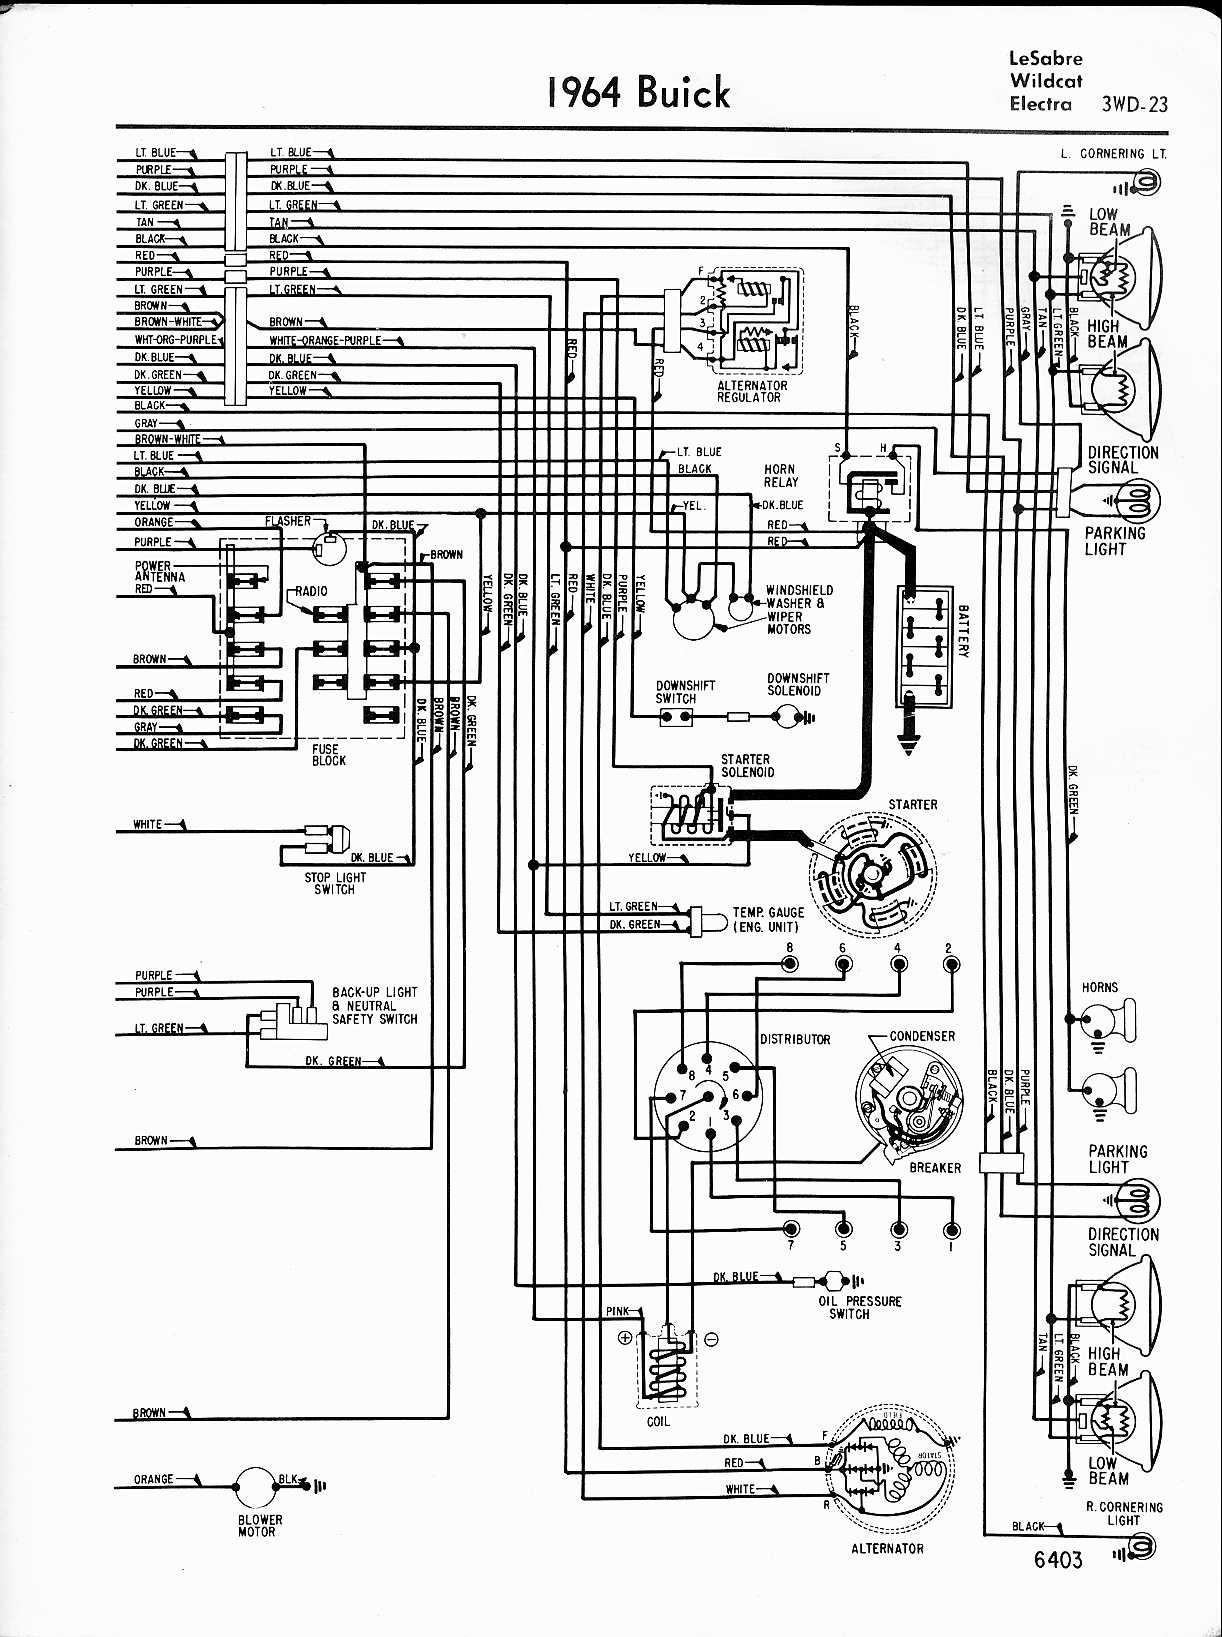 87 grand national wiring diagram online wiring diagram  buick grand national engine diagram buick engine wiring harnesswiring diagrams for buick regal wiring library 2001